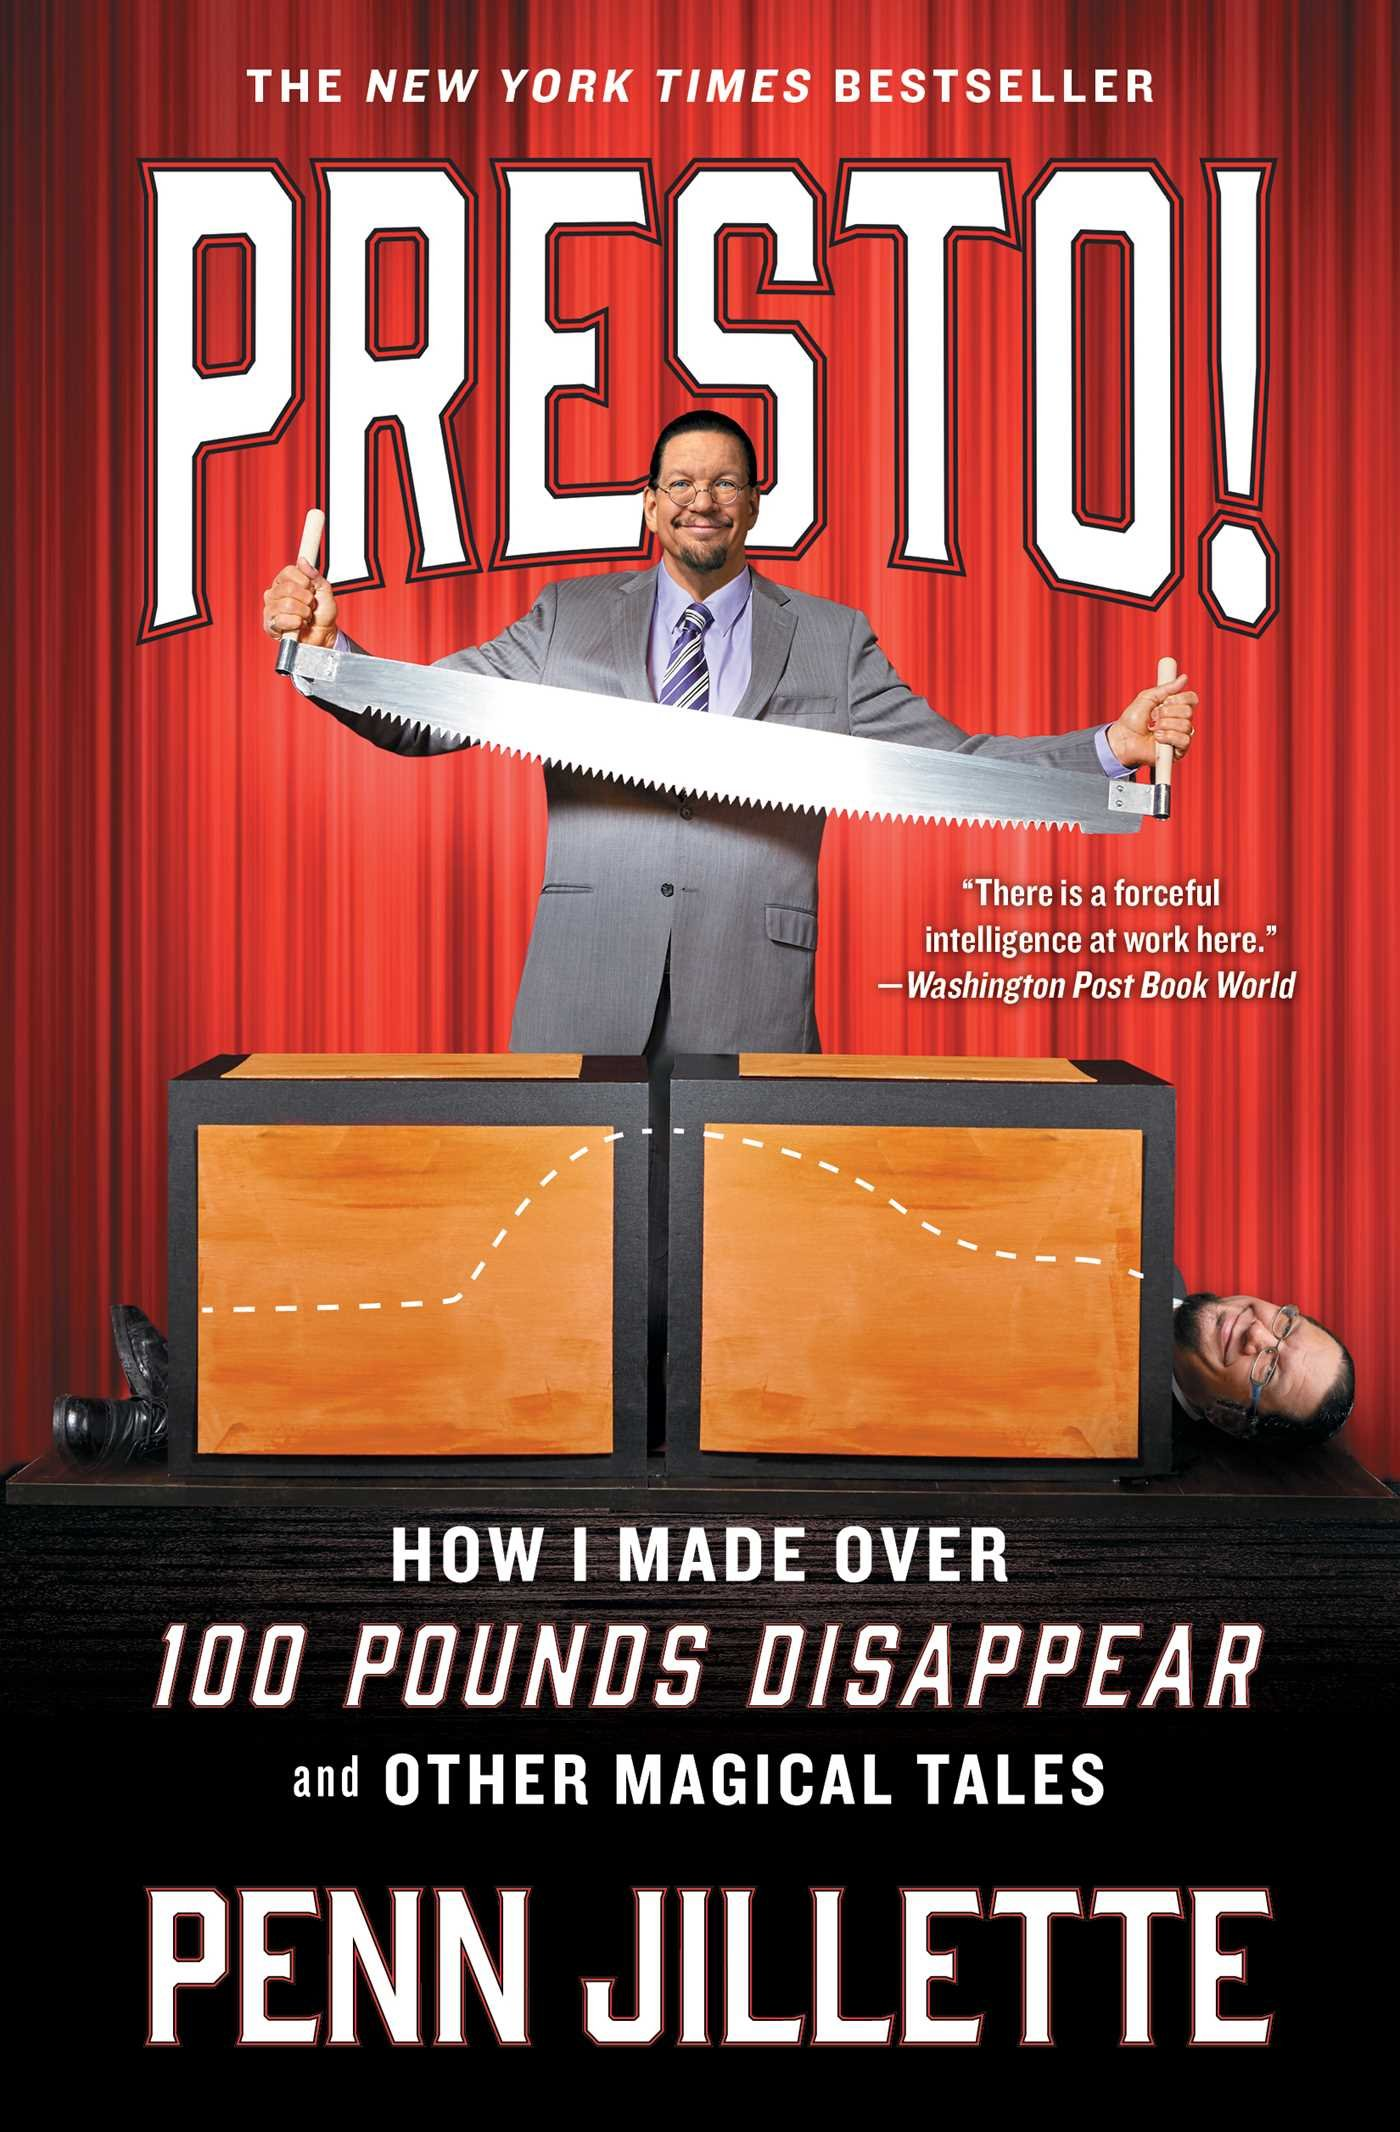 Presto!: How I Made Over 100 Pounds Disappear and Other Magical